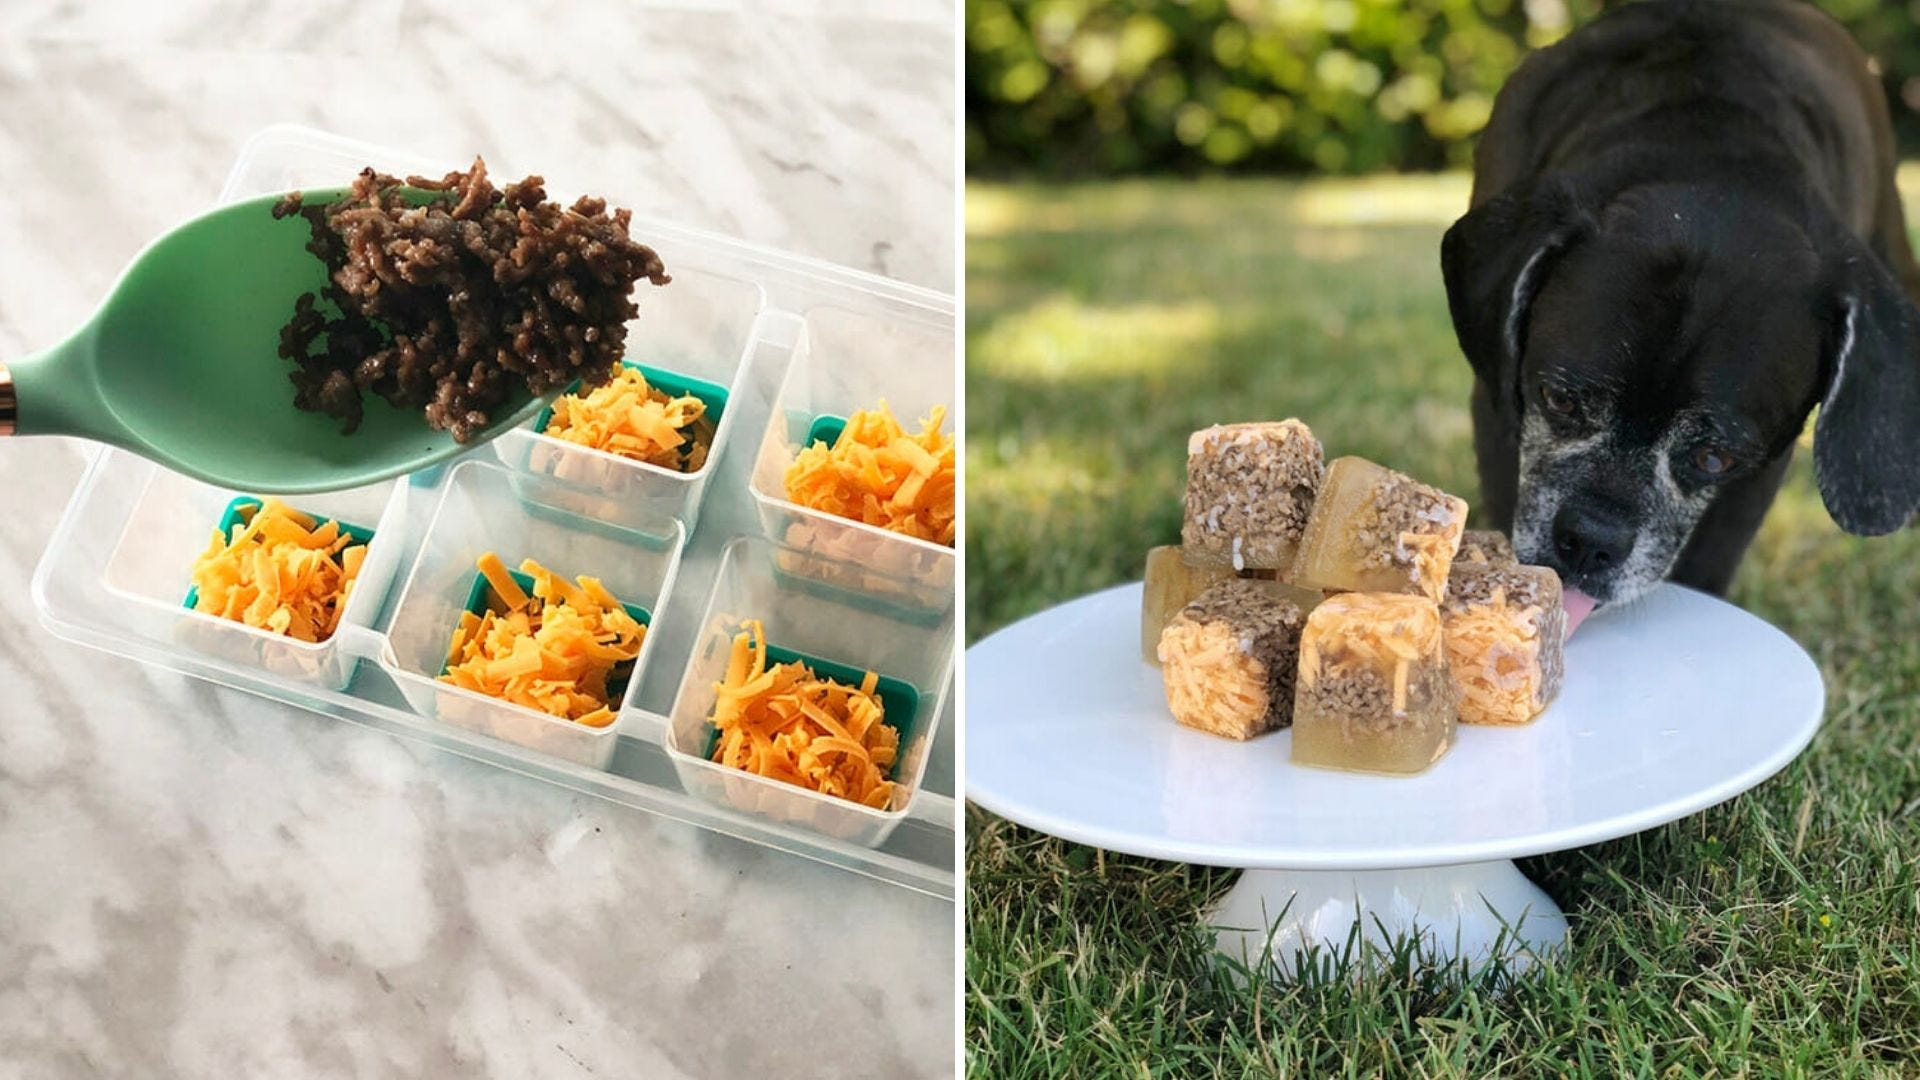 Someone fills ice cube trays with cheese and hamburger and a dog sits in front of a pile of frozen cheeseburger treats